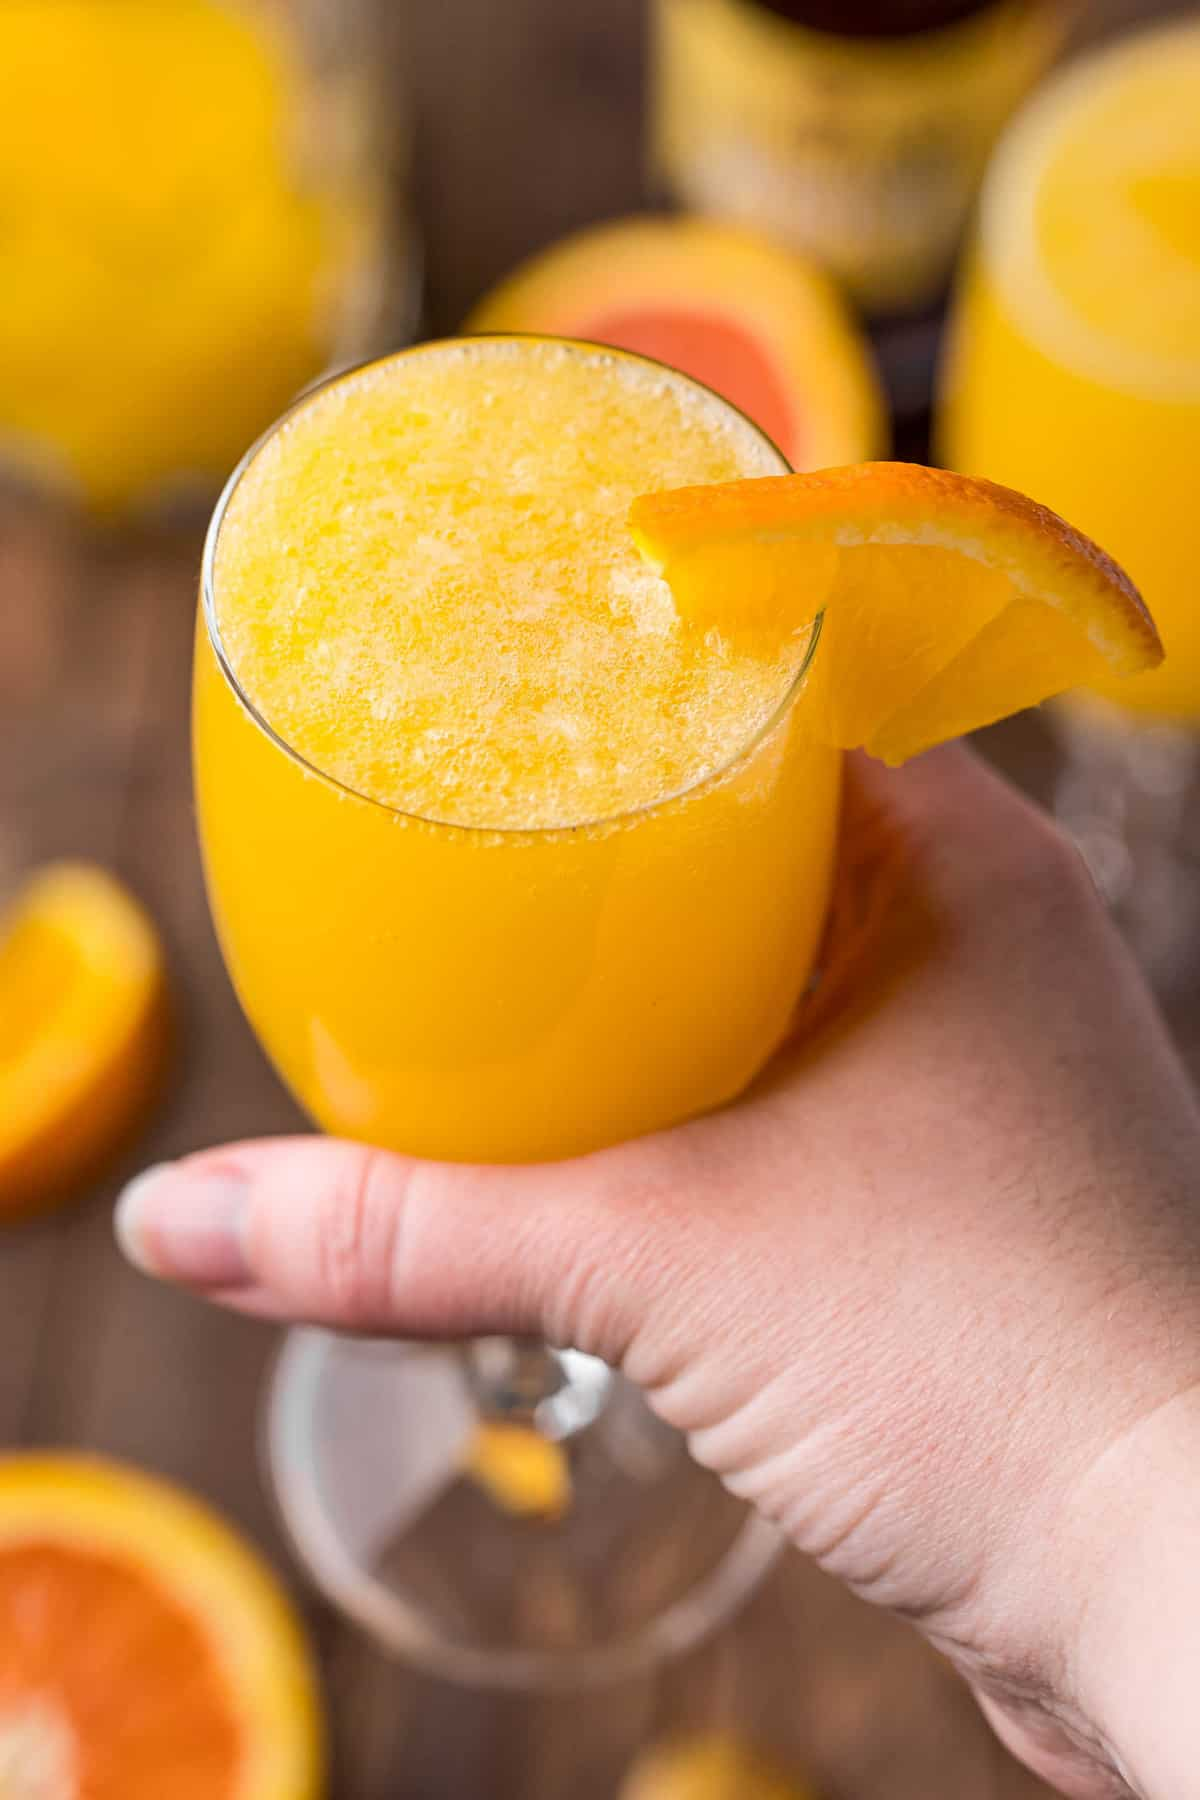 Beermosa, garnished with an orange slice, in a hand.